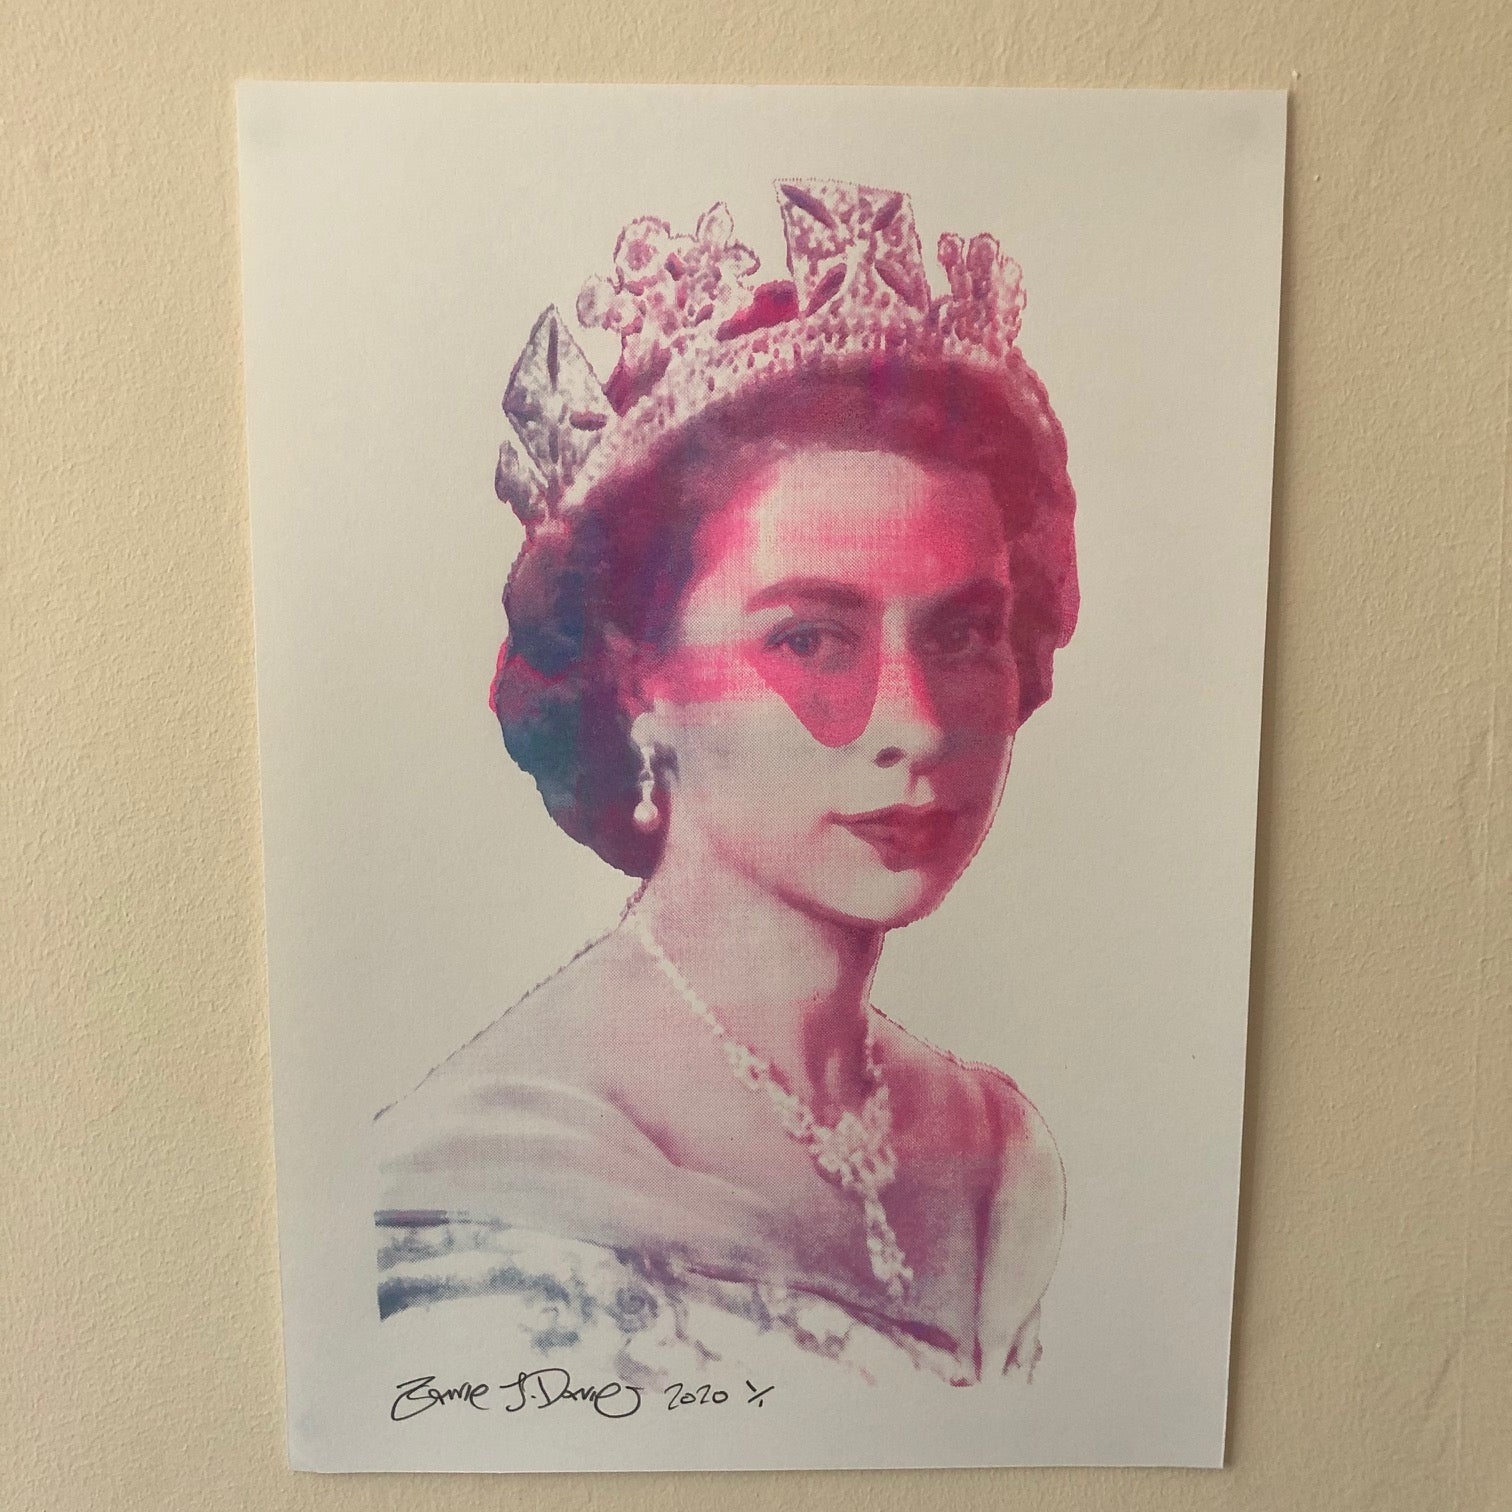 The Queen Print by Barrie J Davies 2020 - unframed Silkscreen print on paper (hand finished) edition of 1/1 - A3 size 29cm x 42cm